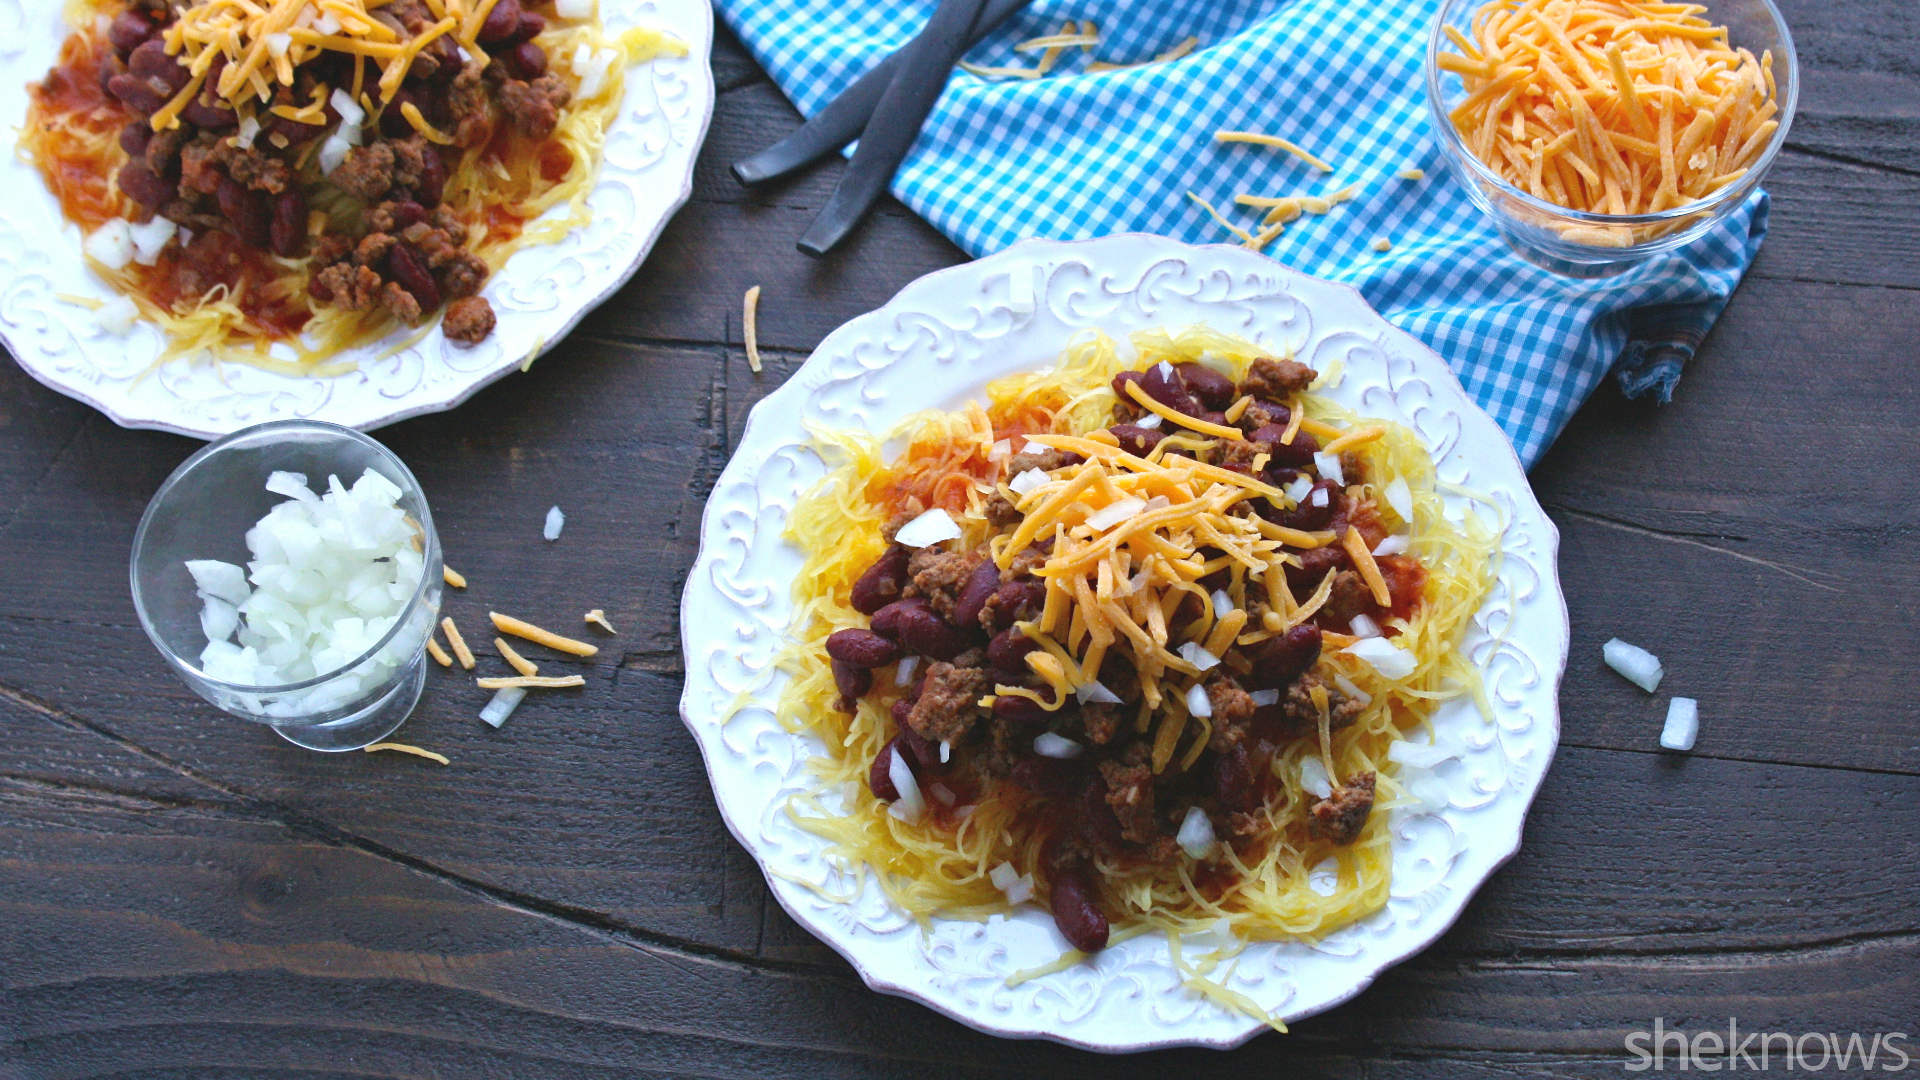 This gluten-free Cincinnati-style chili with spaghetti squash is flavorful and fun!